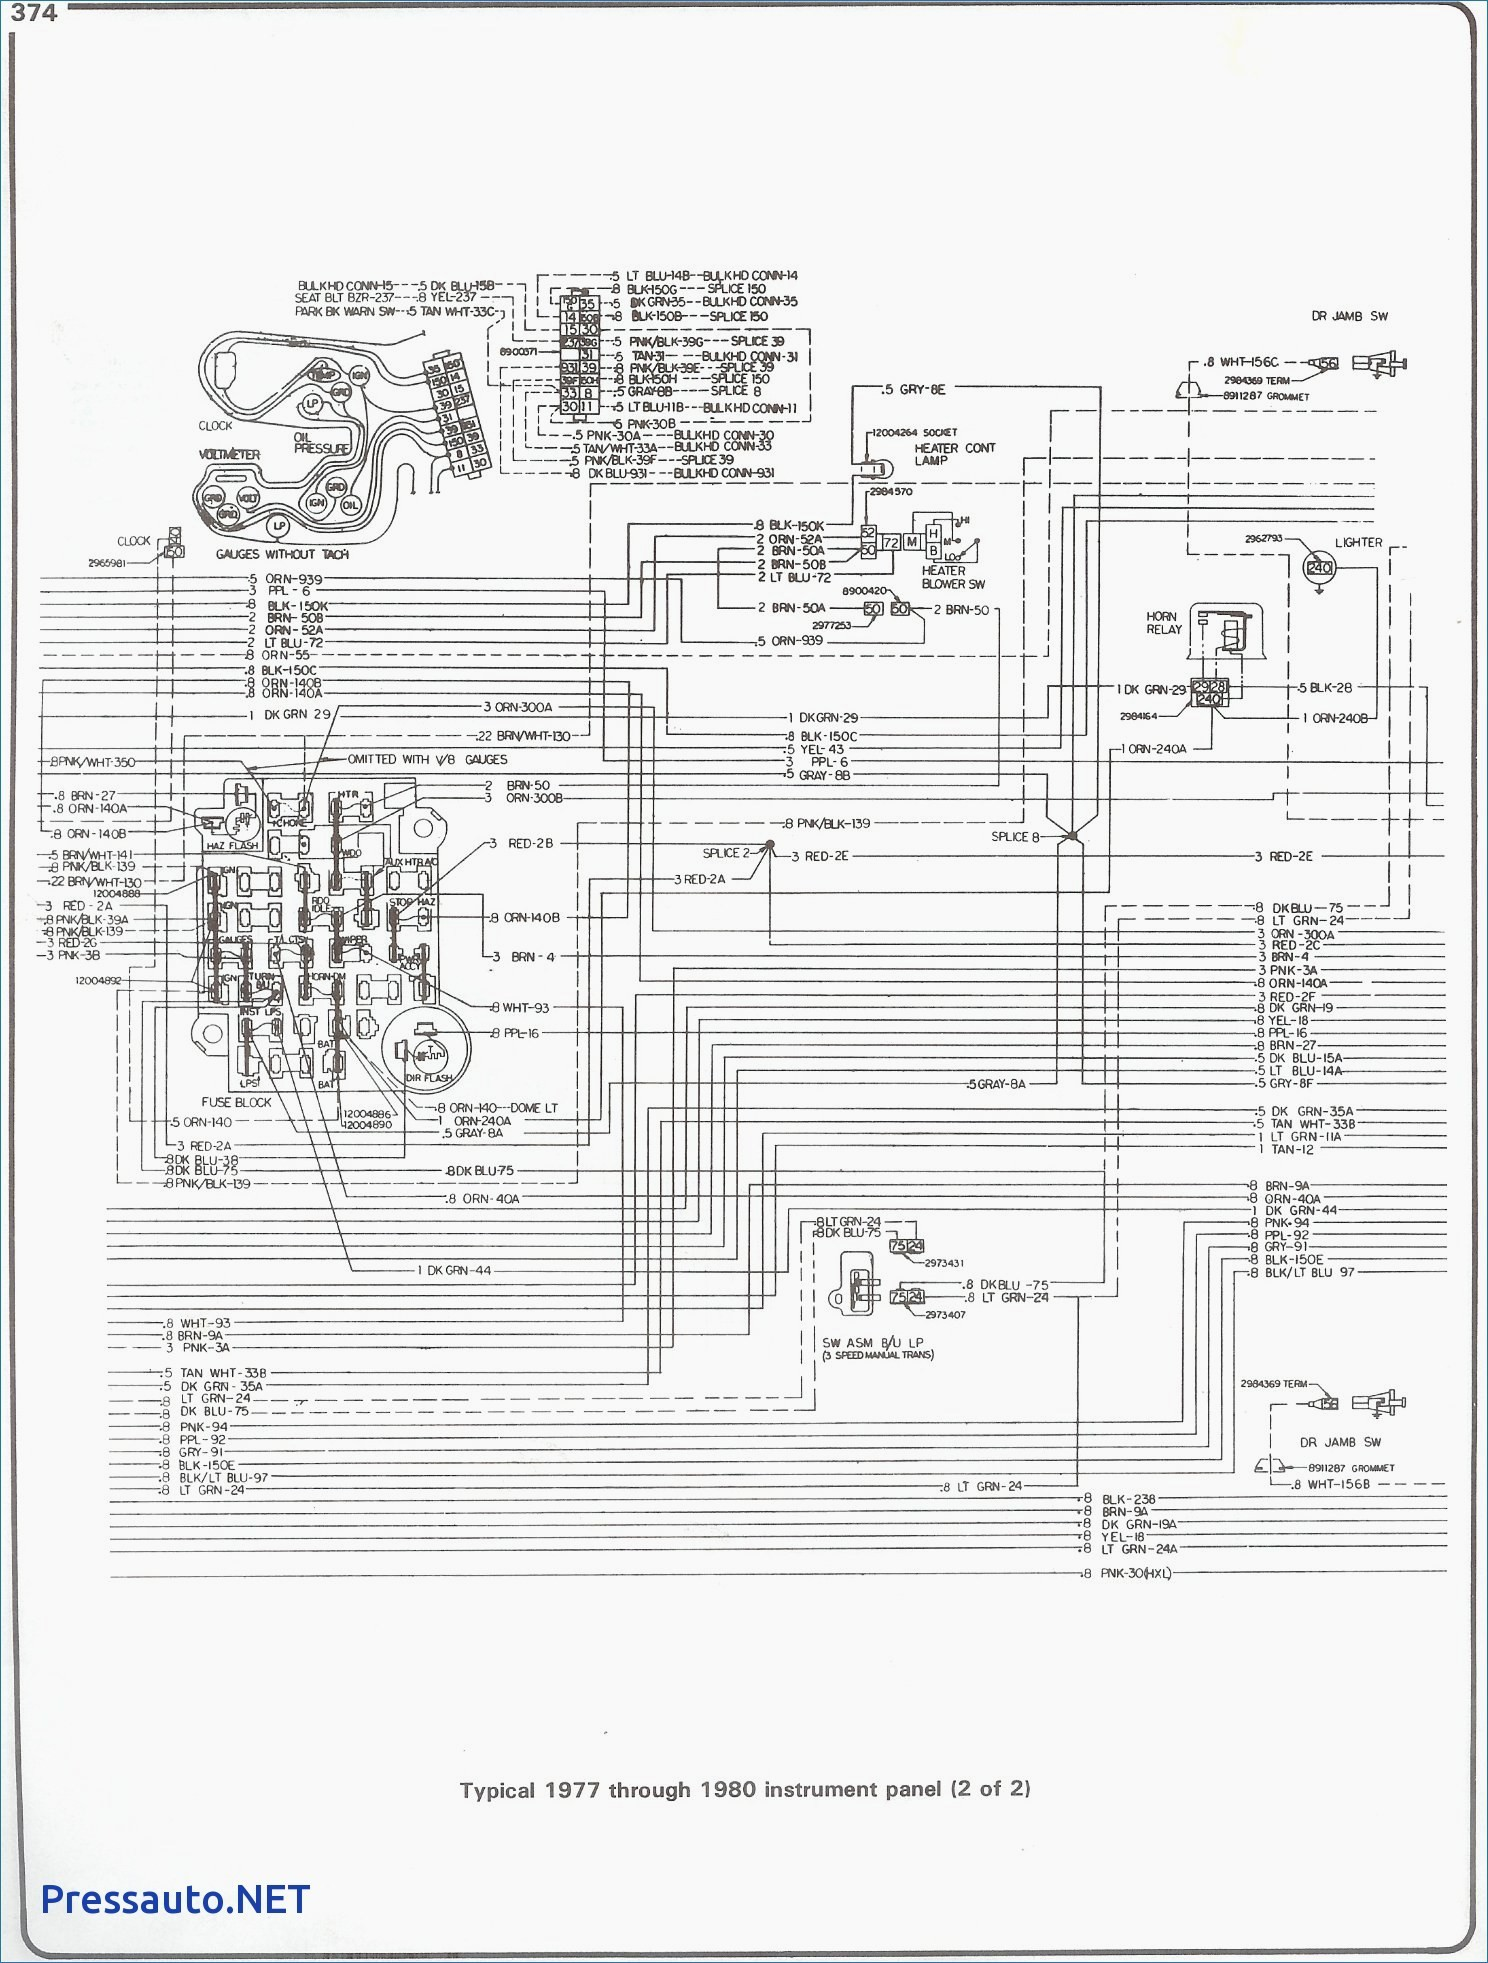 1983 toyota Pickup Wiring Diagram Fancy 1987 toyota Pickup Wiring Diagram Frieze Electrical Diagram Of 1983 toyota Pickup Wiring Diagram